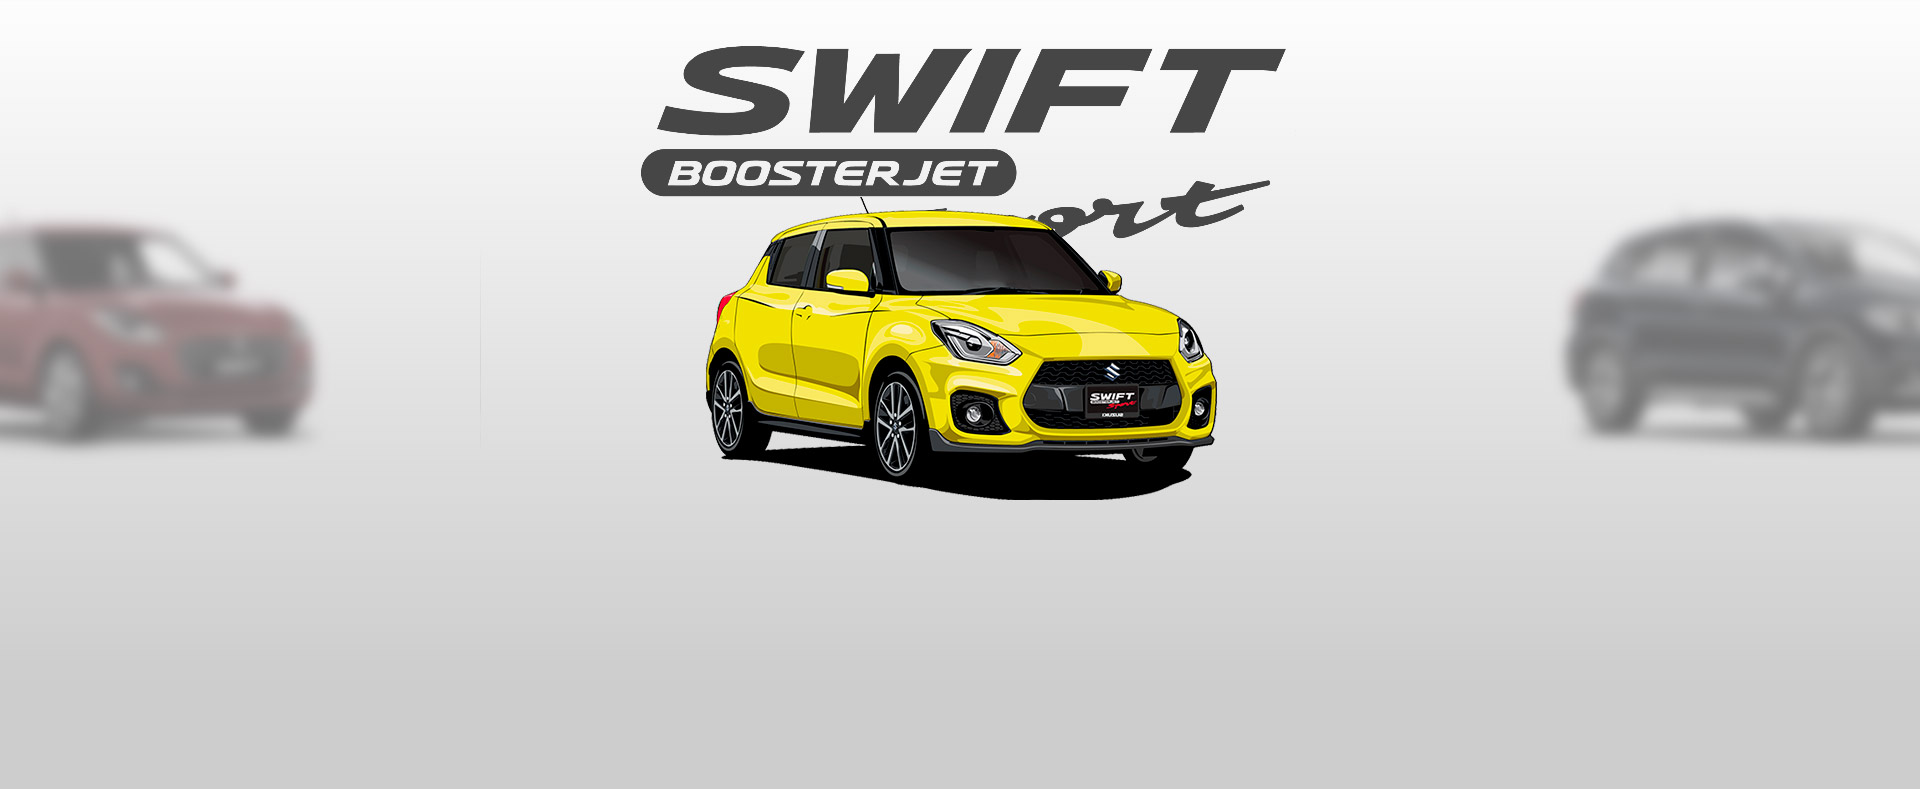 Swift Booster